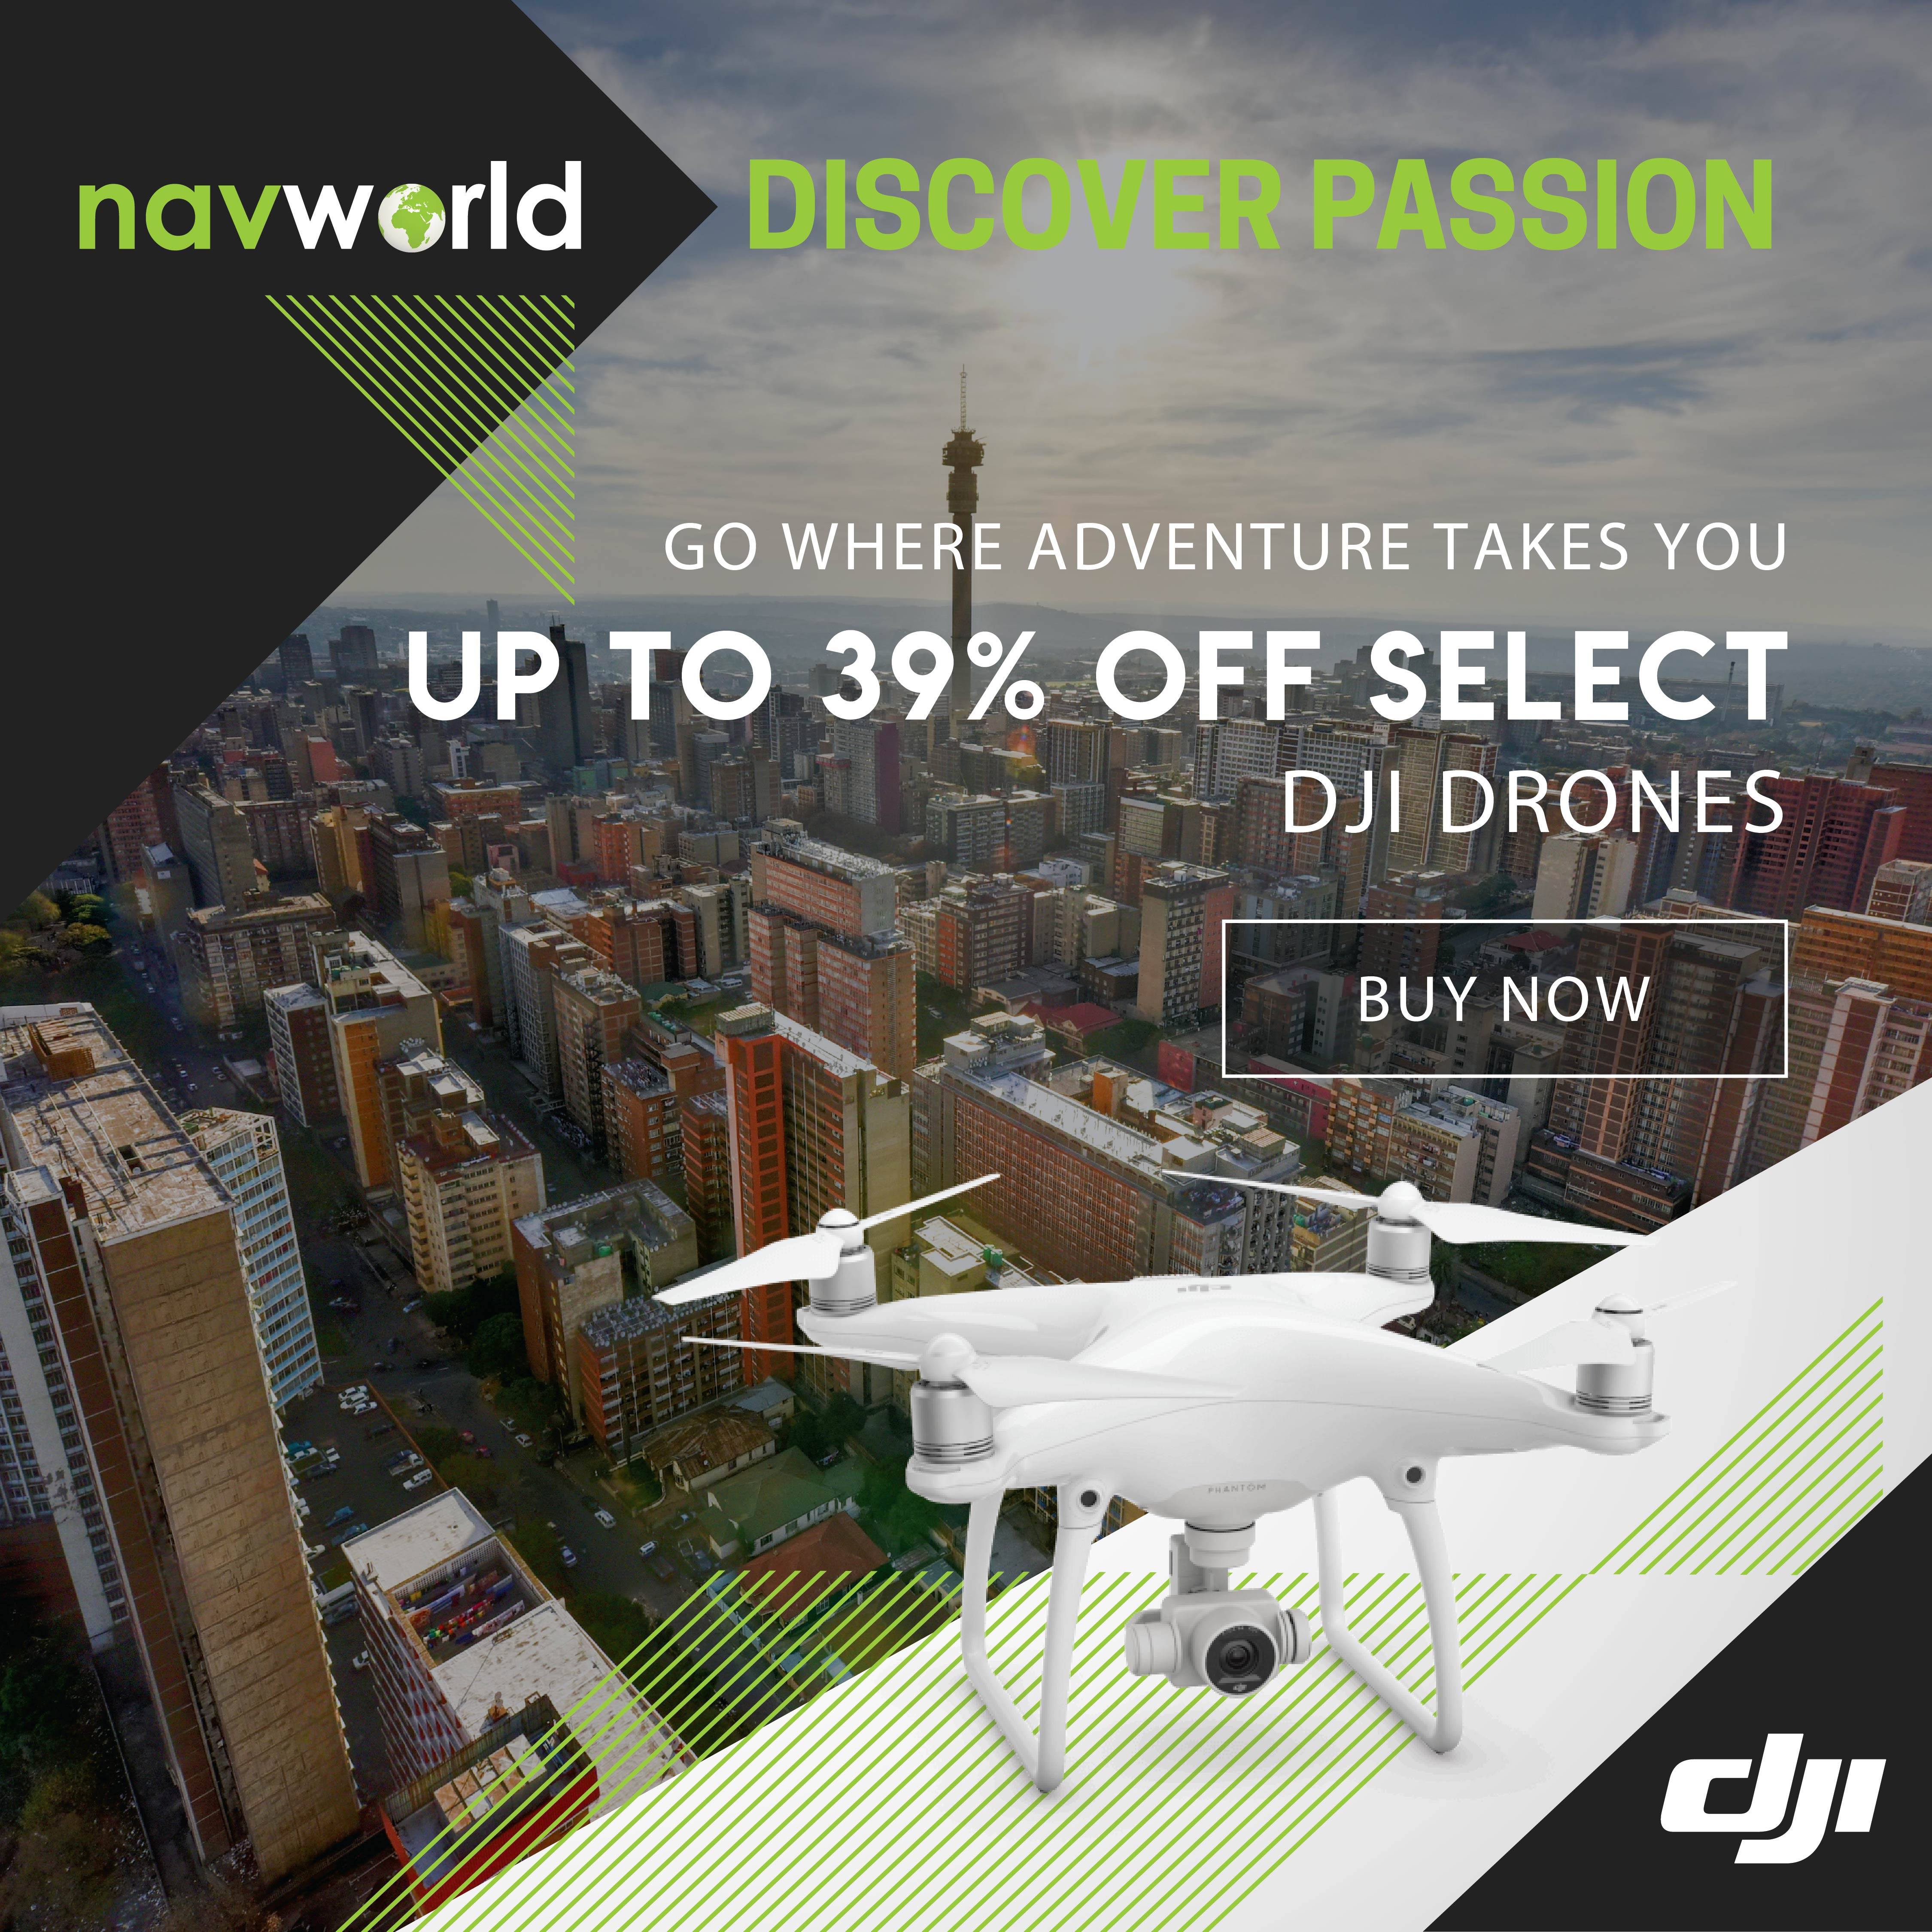 Navworld DJI Promotion